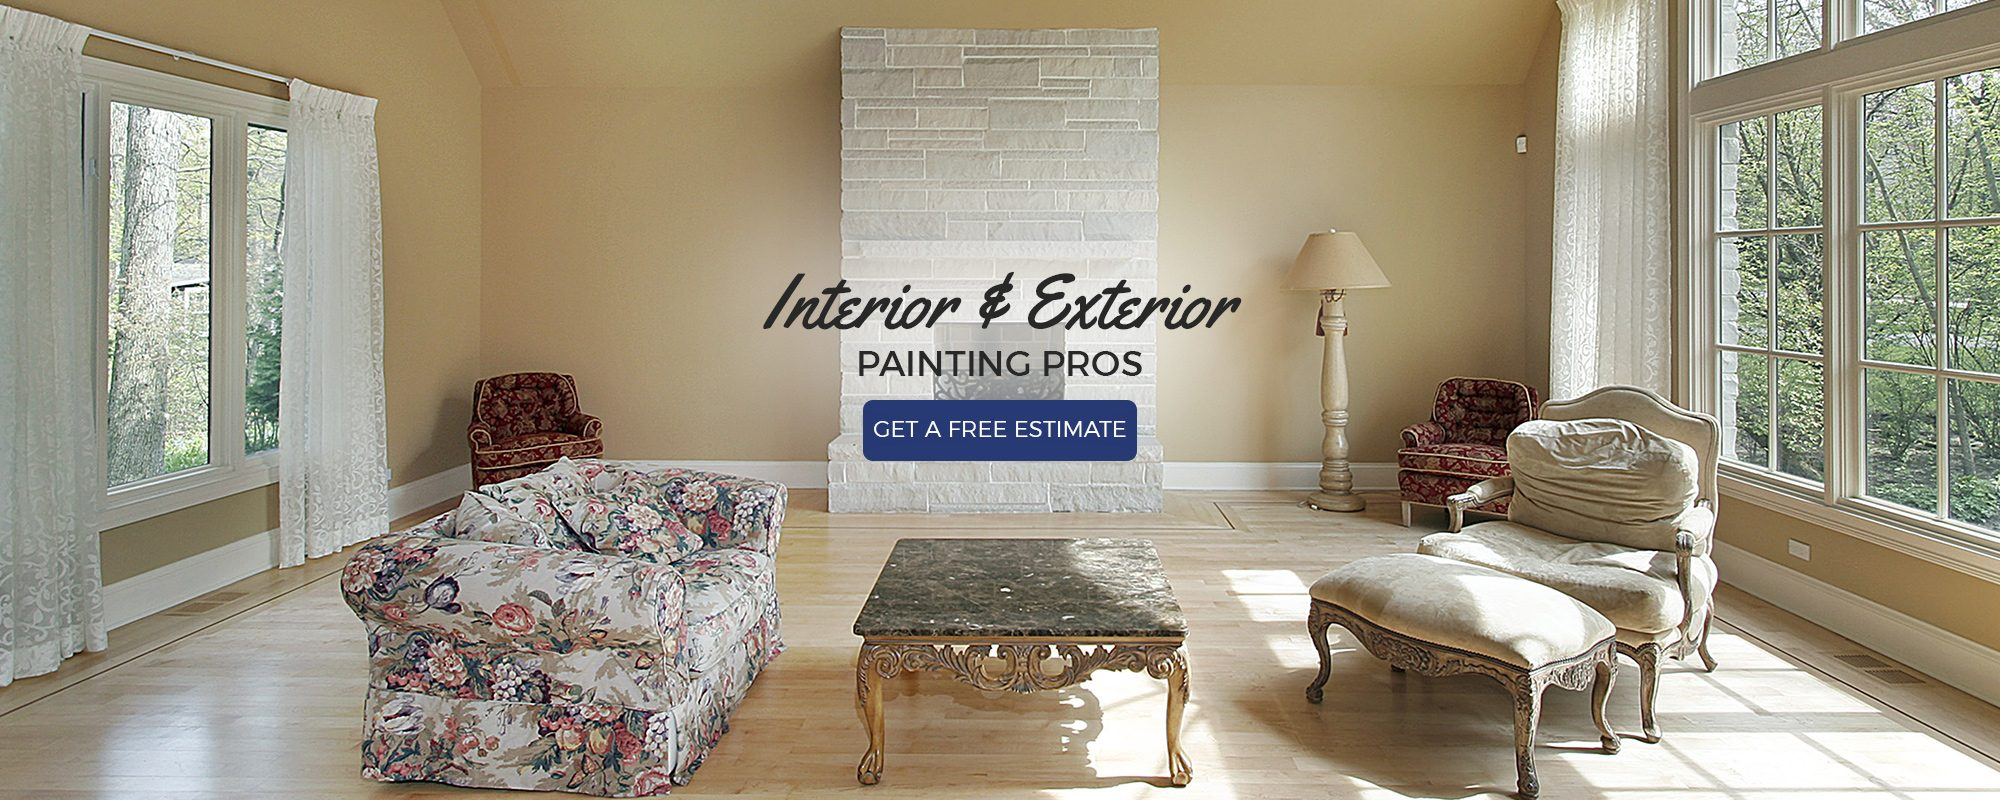 Steve Holloway Painting   Choose The Best Painters In Bakersfield For All  Your Painting Needs